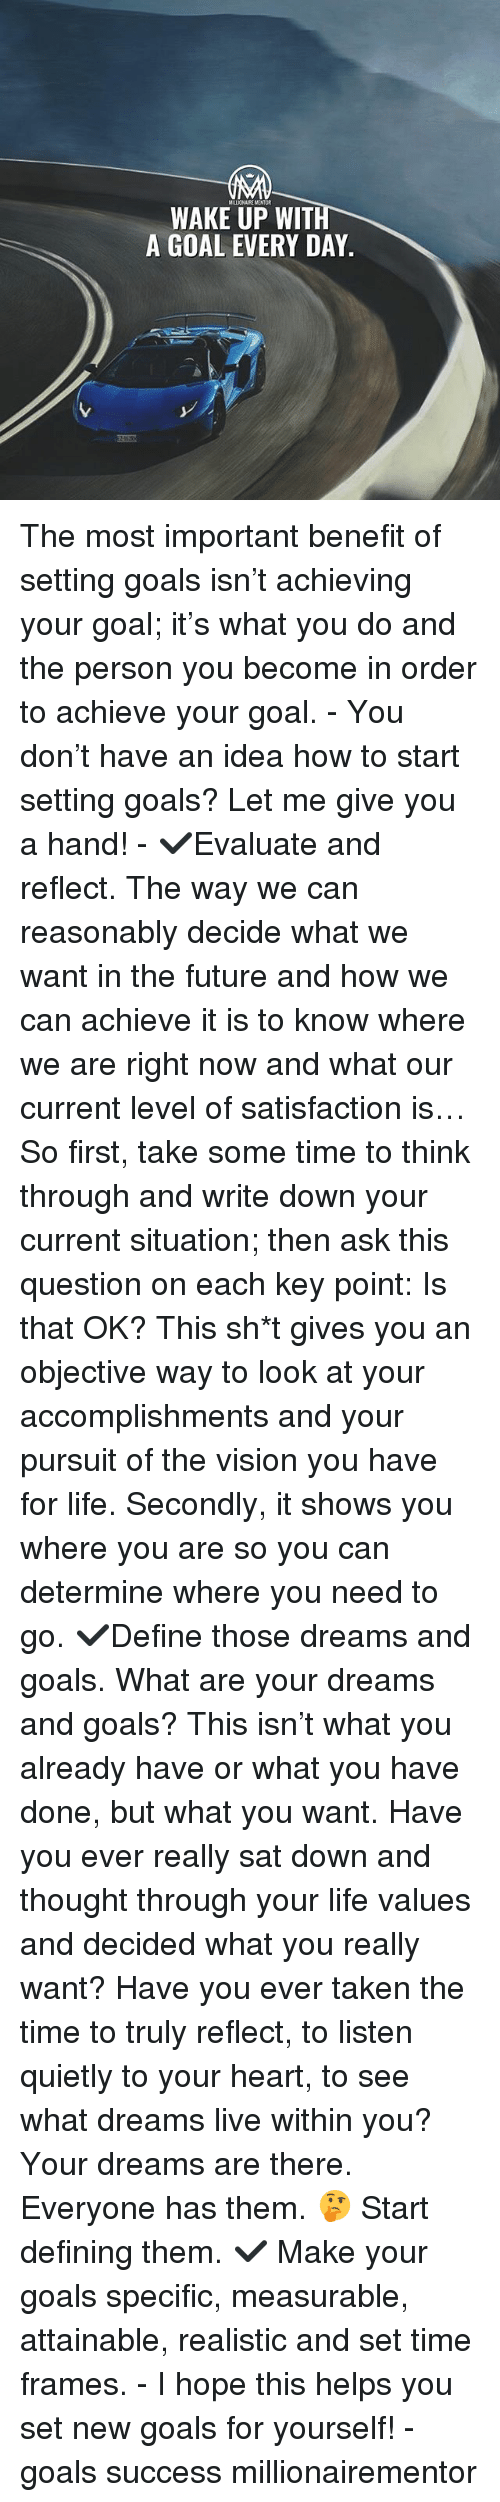 my thoughts on success and achieving satisfaction